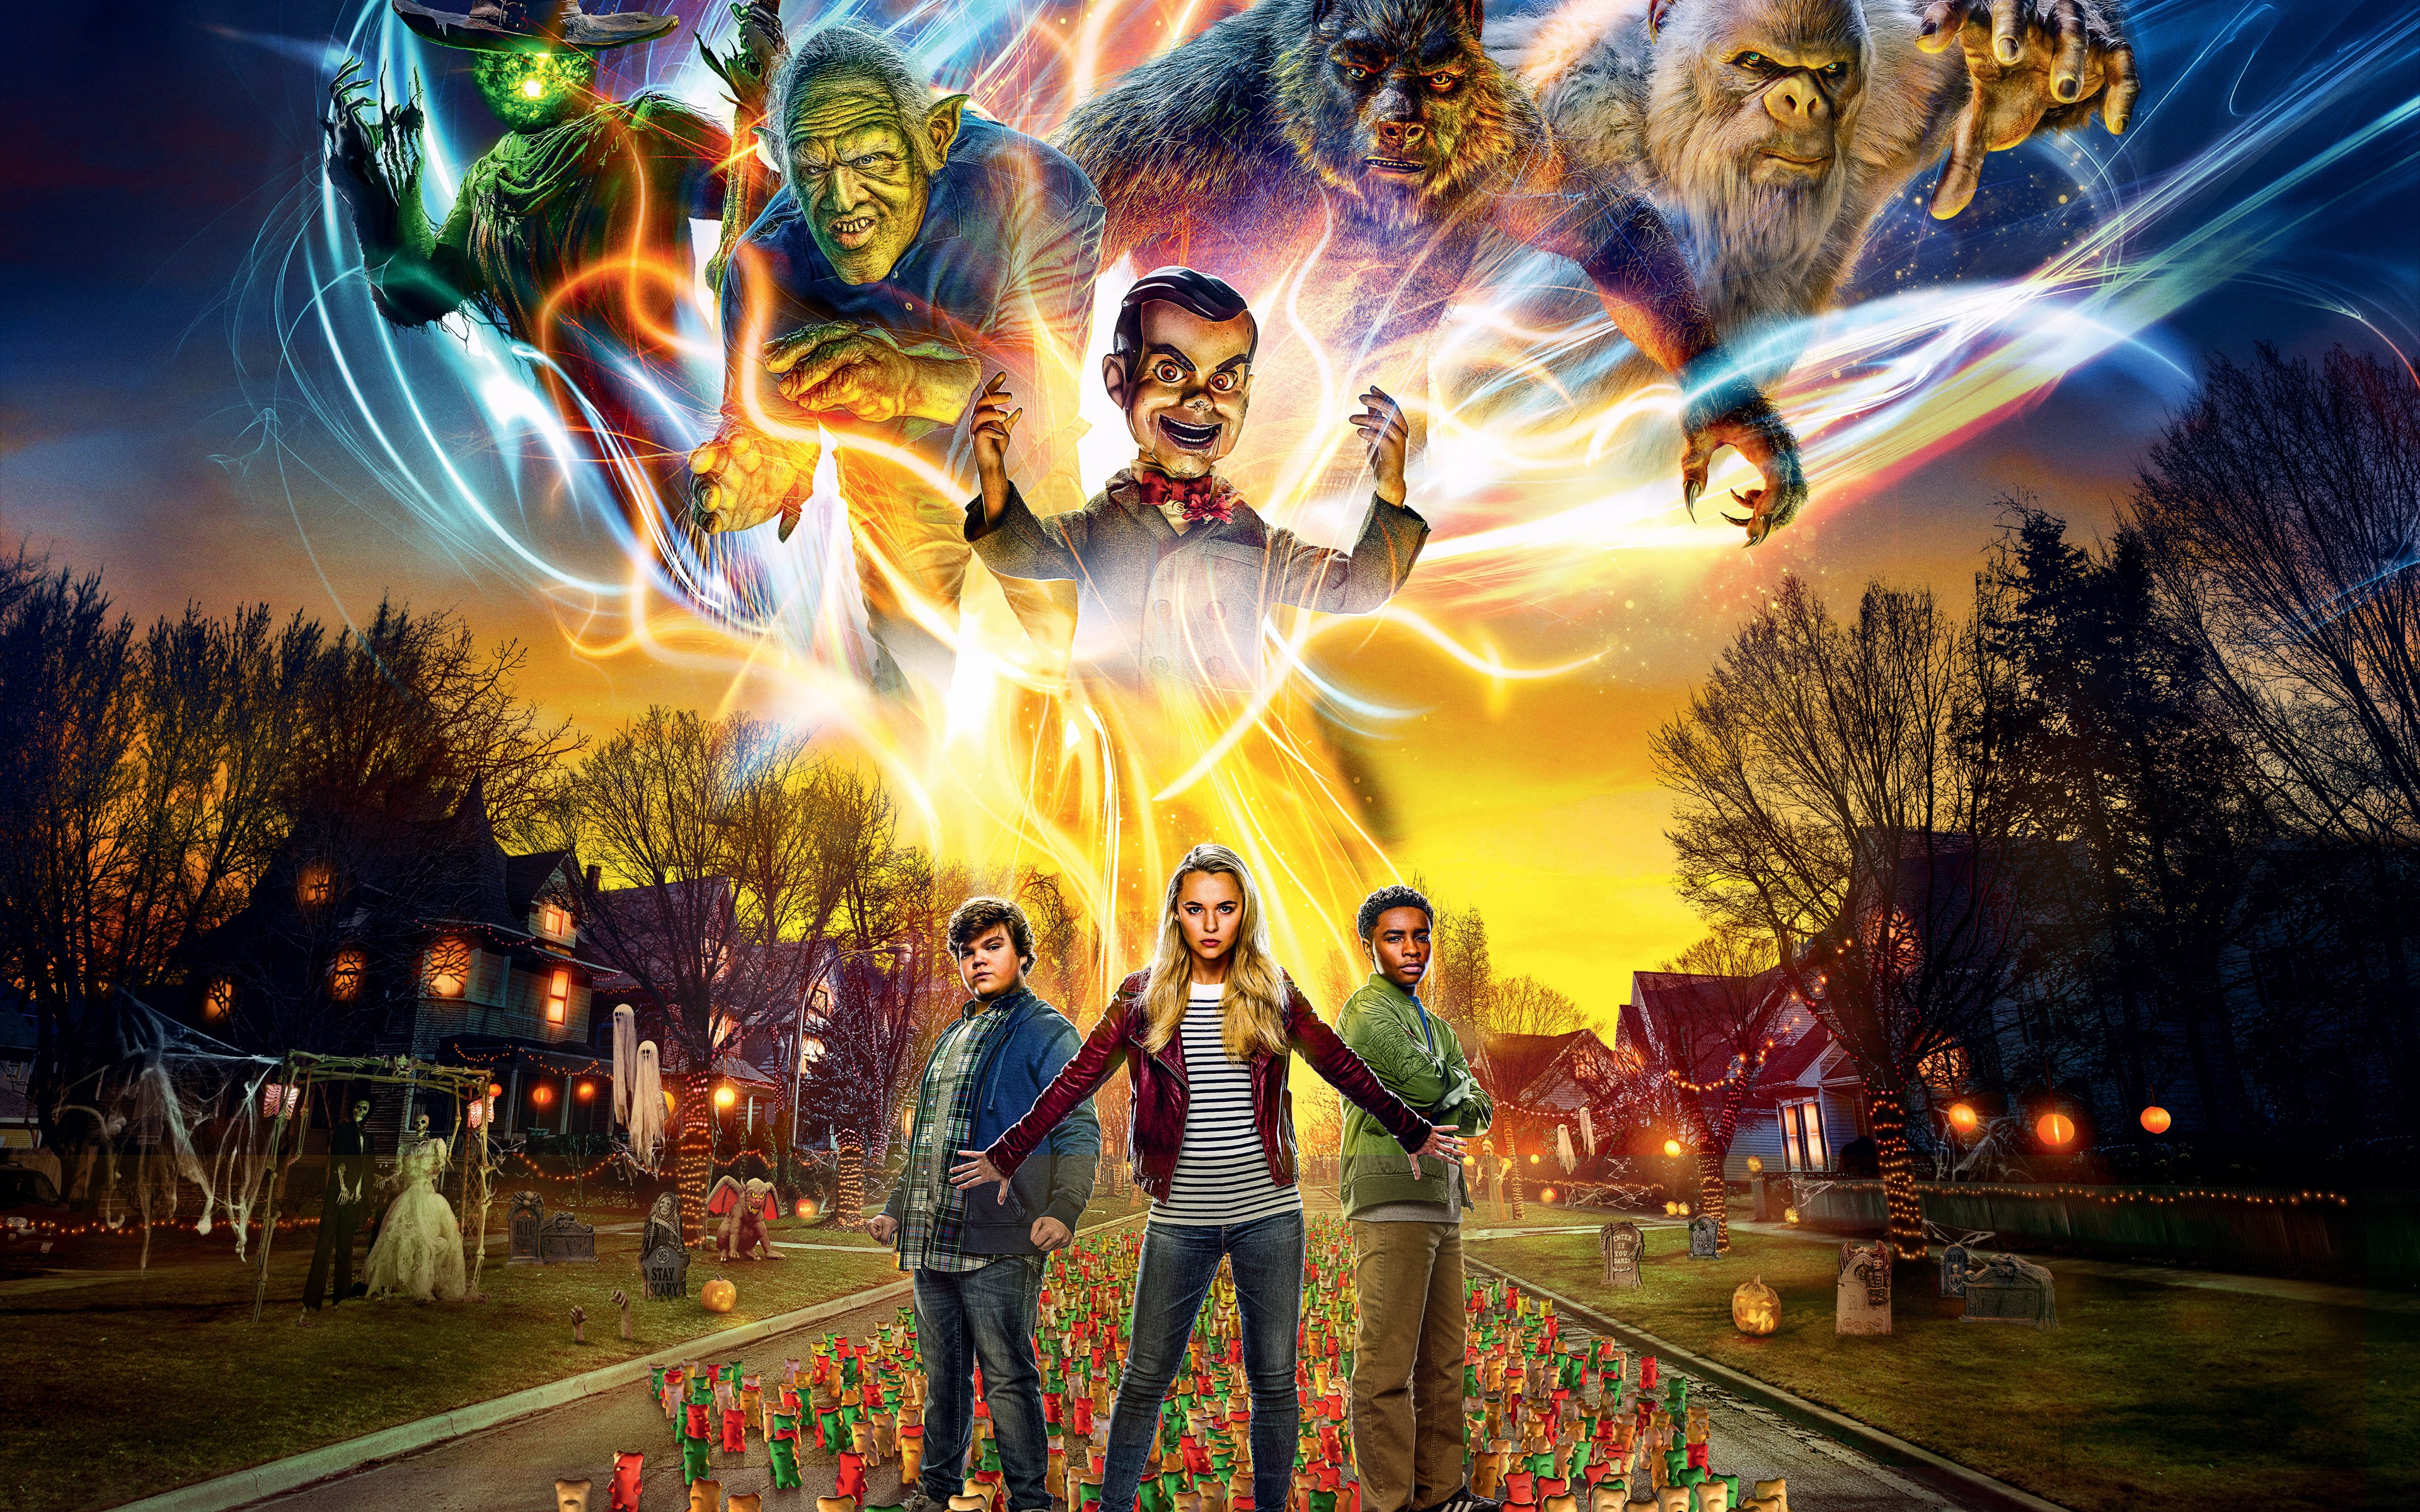 Goosebumps 2: Haunted Halloween wallpaper 3840x2400